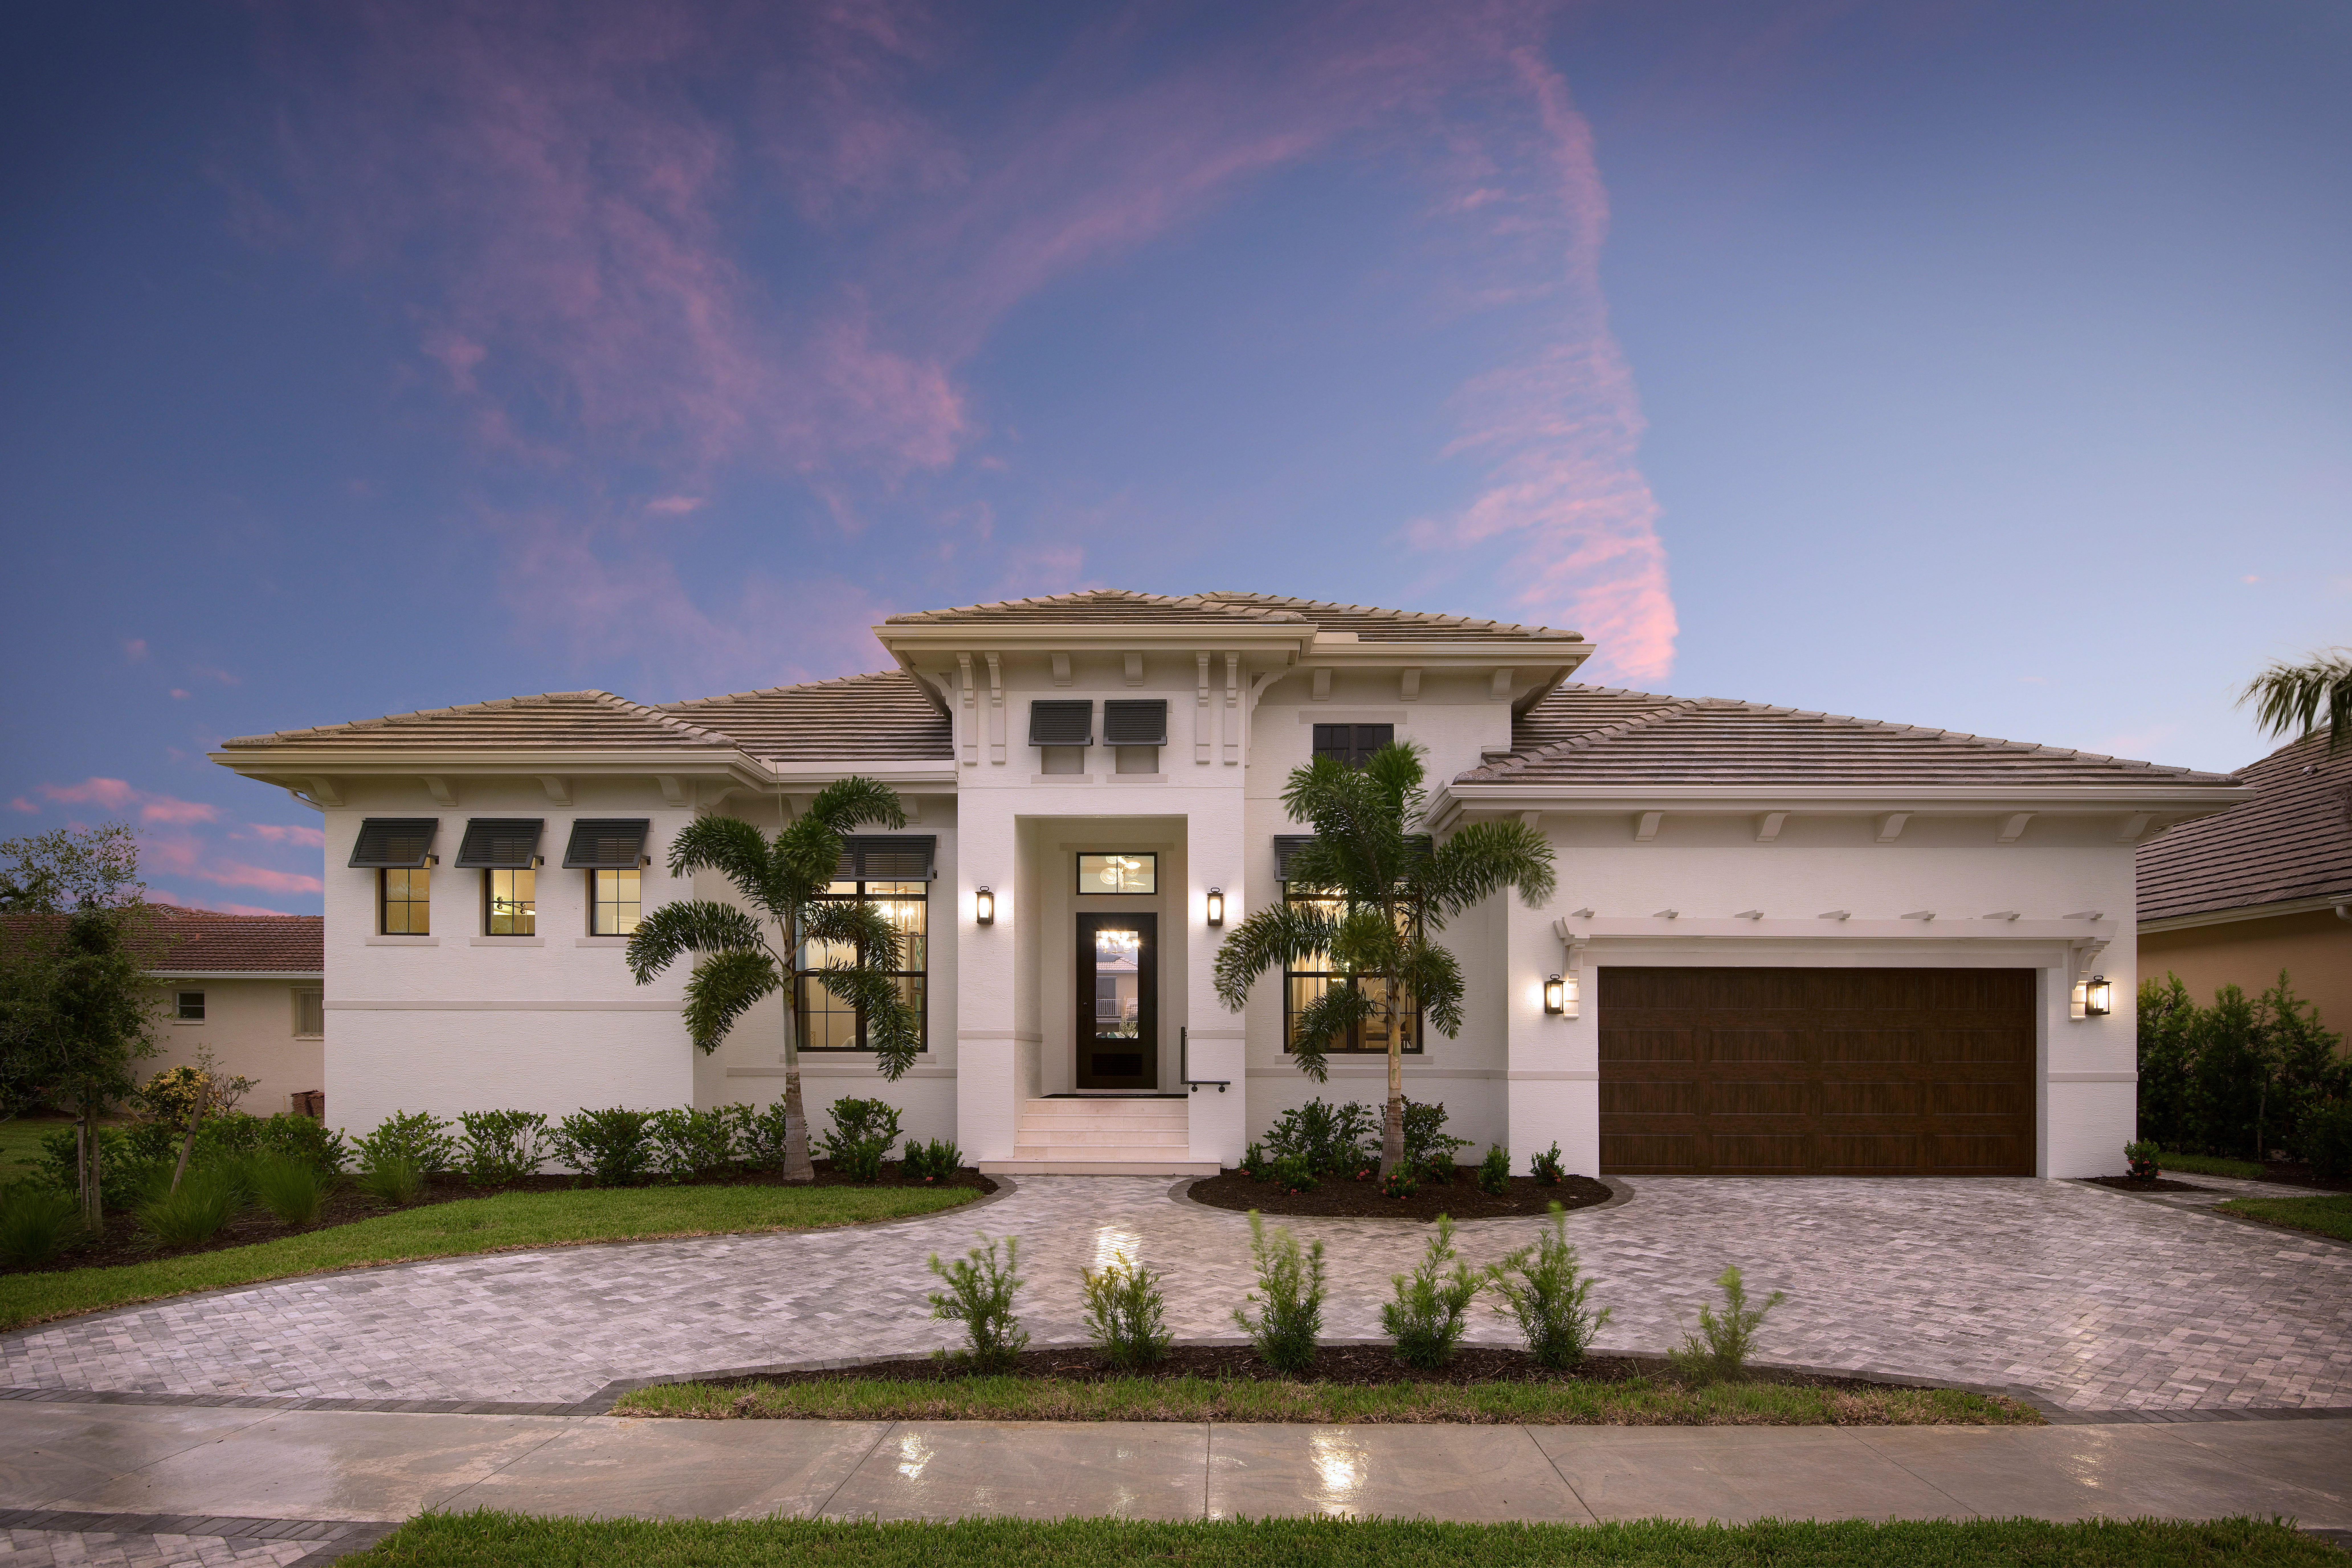 Stocku0027s Pasadena Model At 1610 Winterberry Drive Is Available For Viewing.